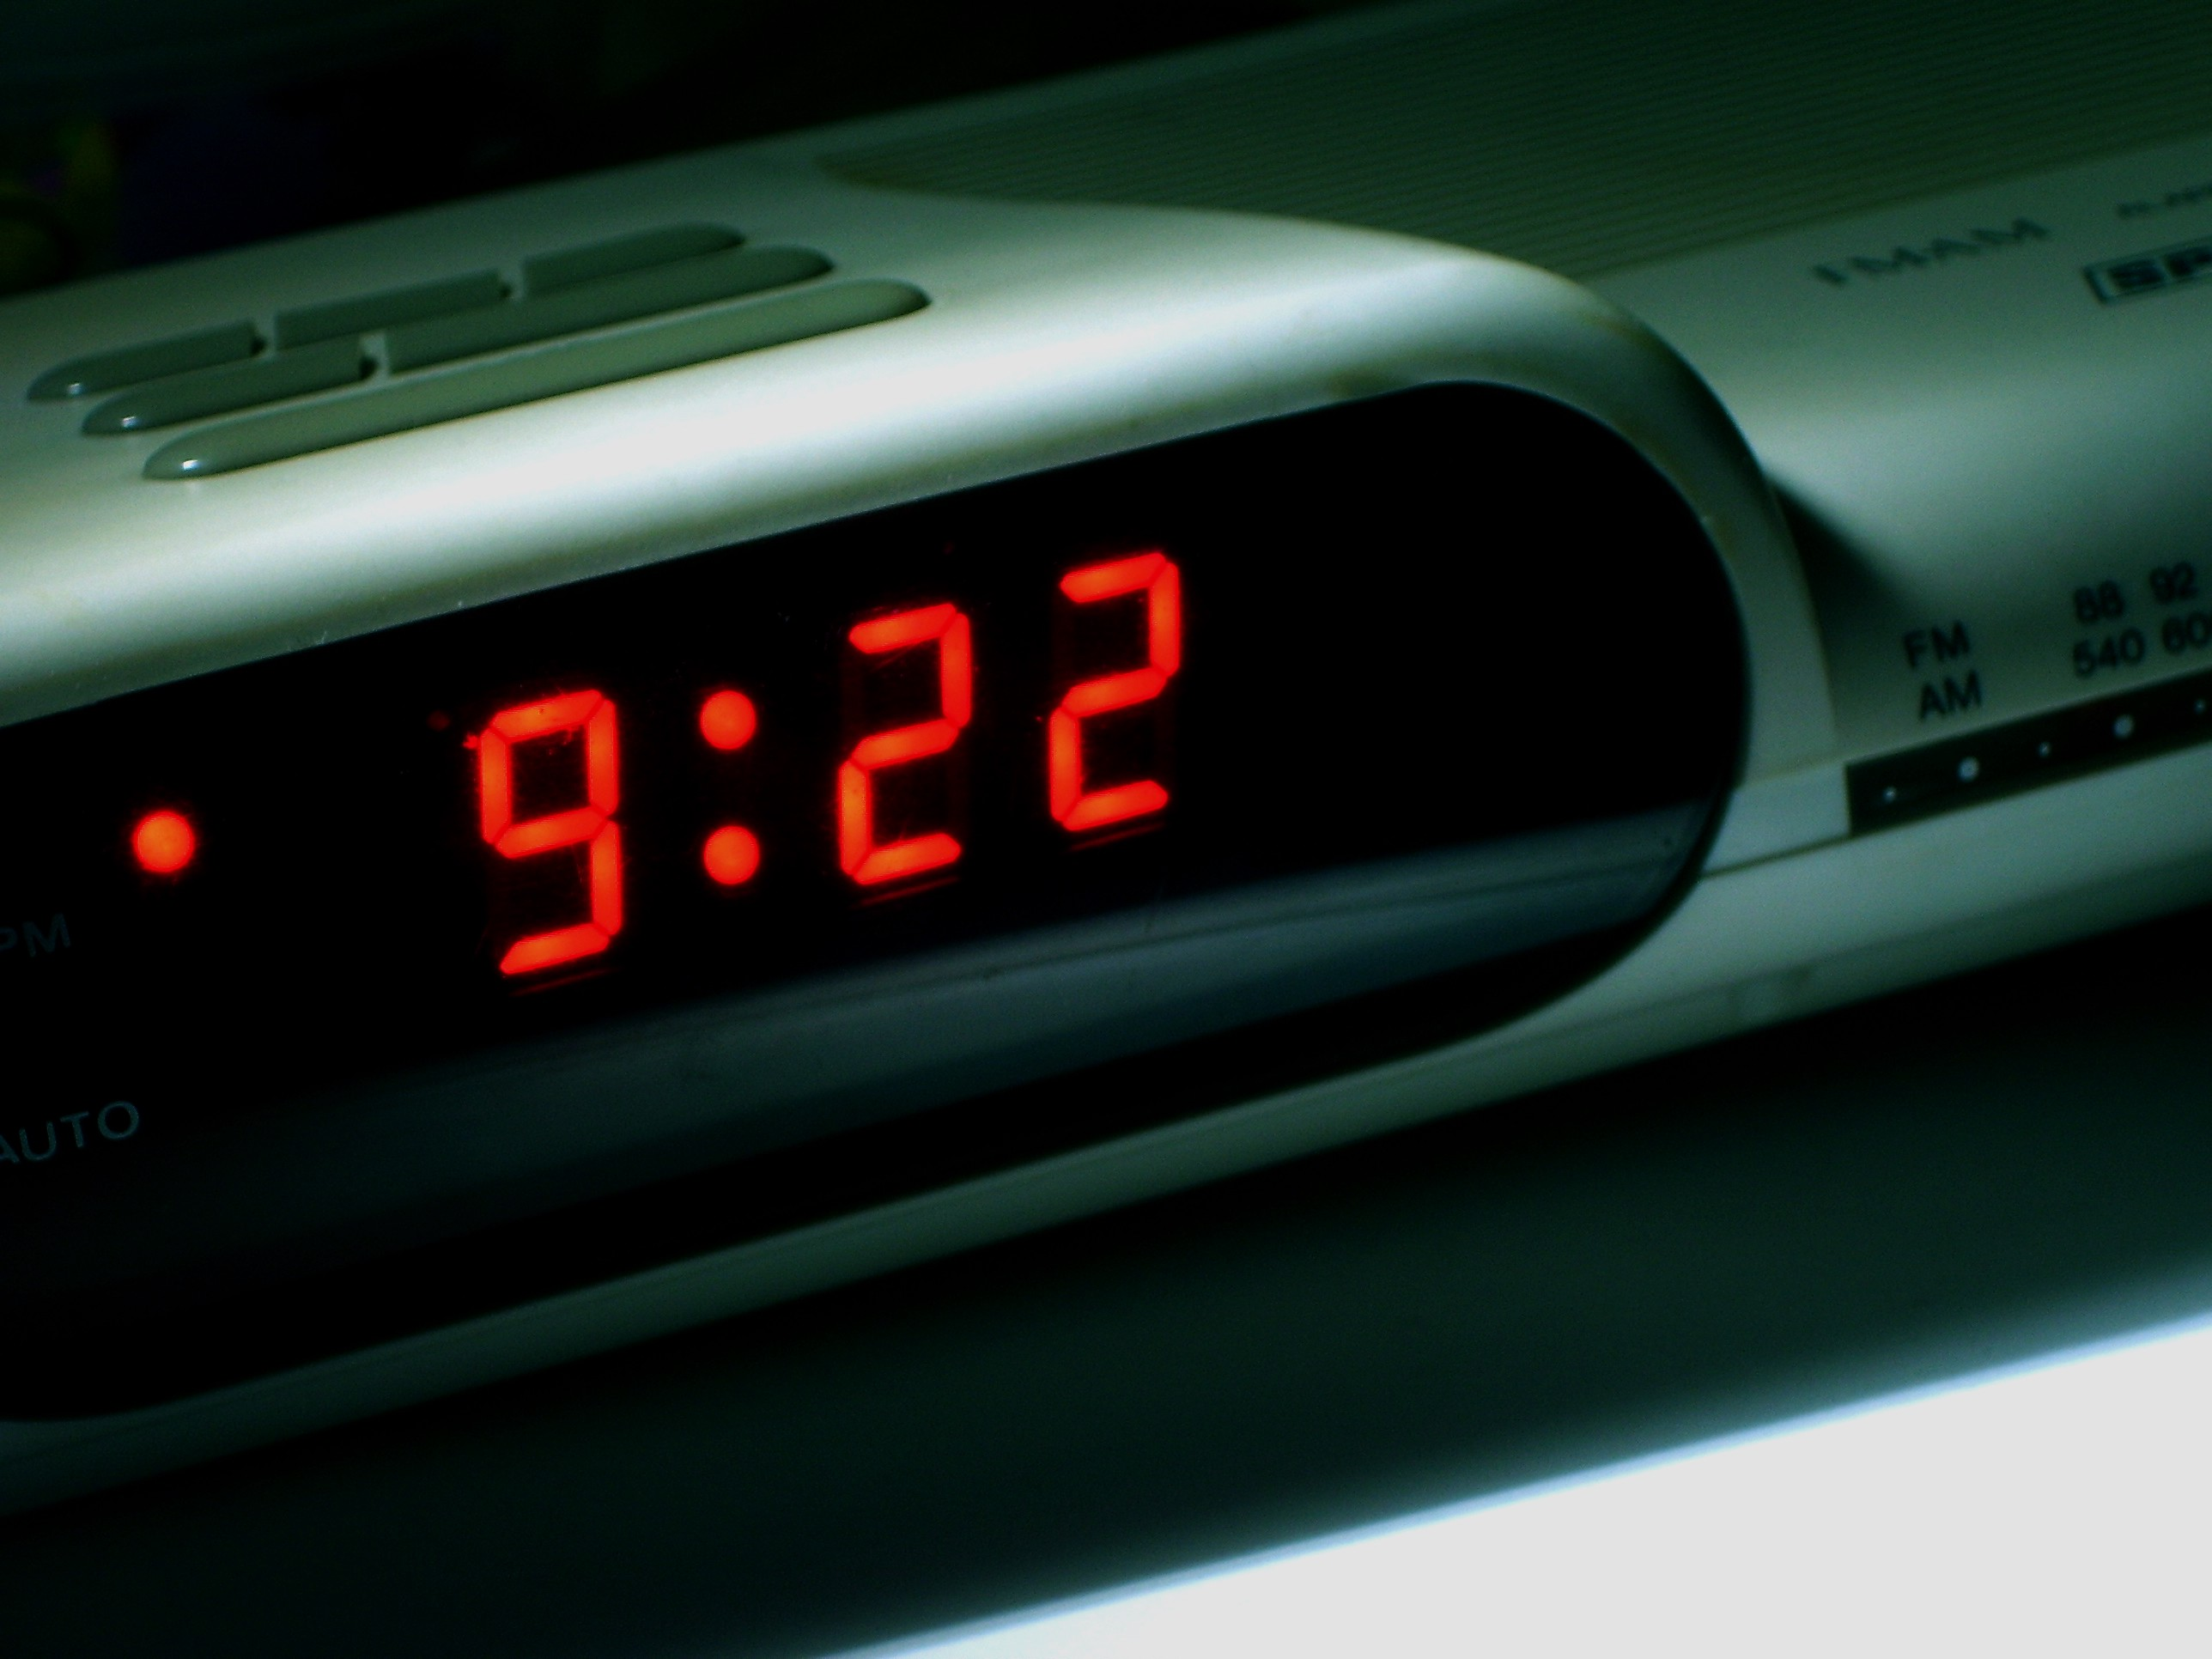 Digital Alarm Clock History The Worst Part Of Waking Up Integrated Circuit Important In Technology